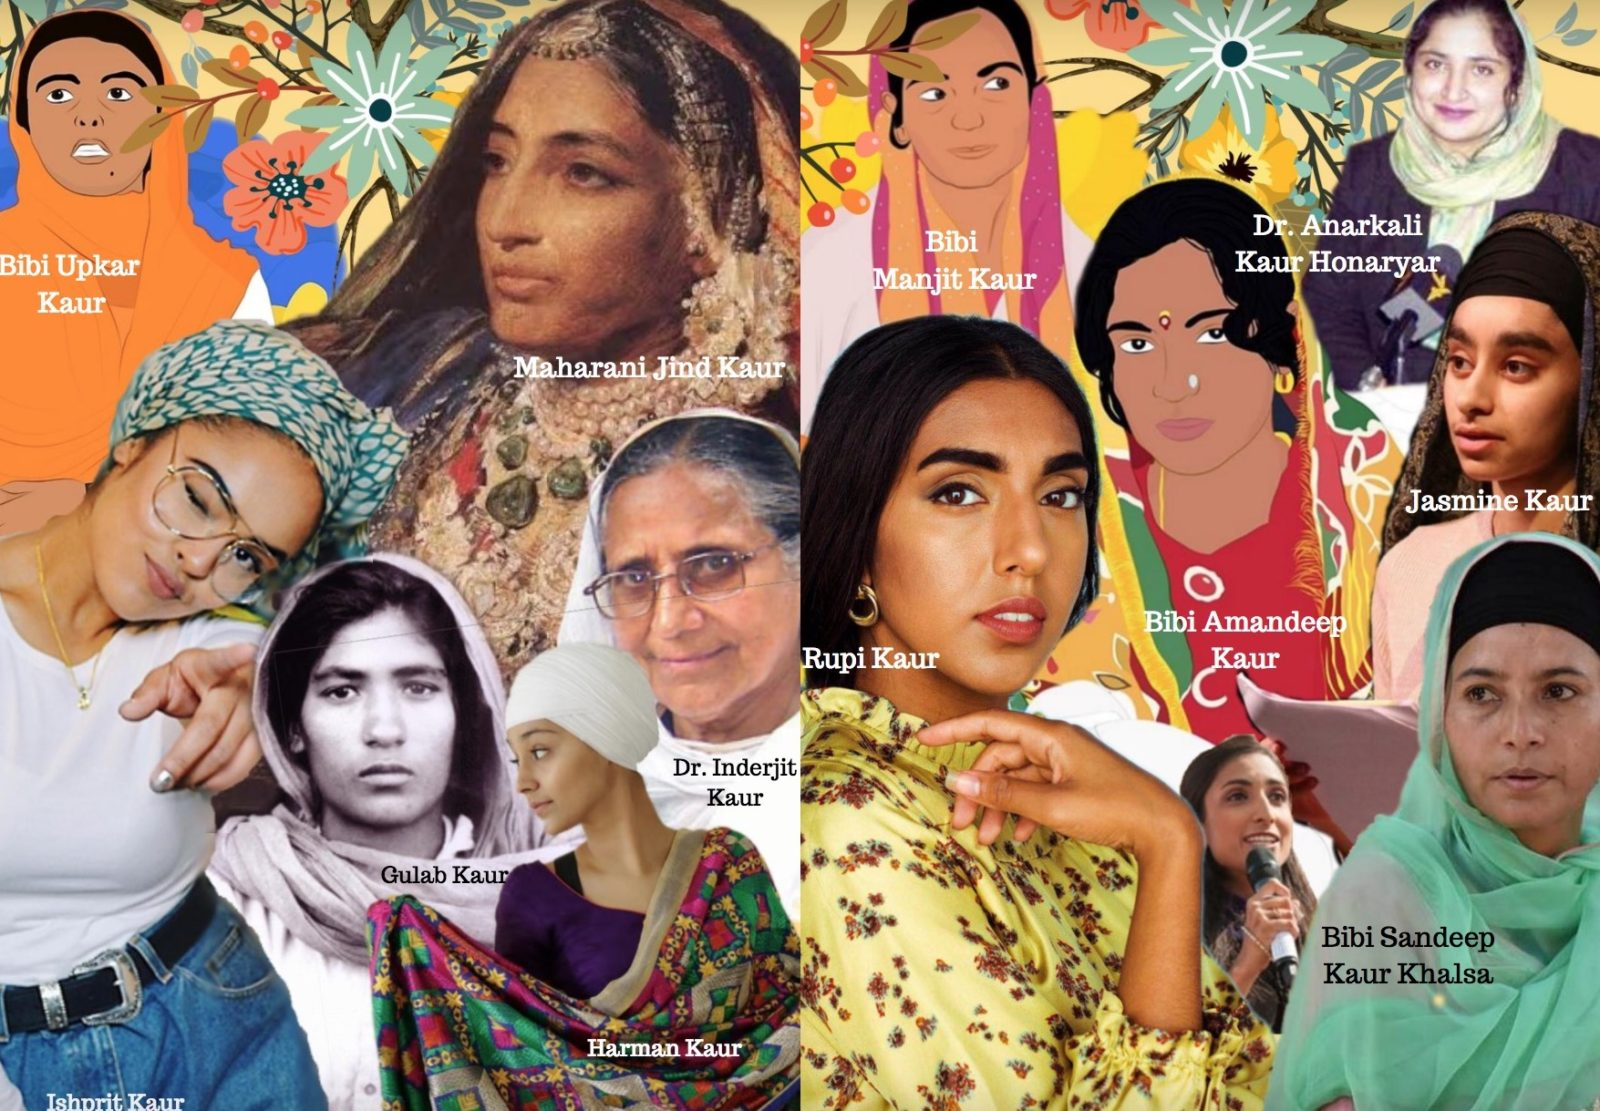 Kaur Panth Zine of Sikh Women Cover